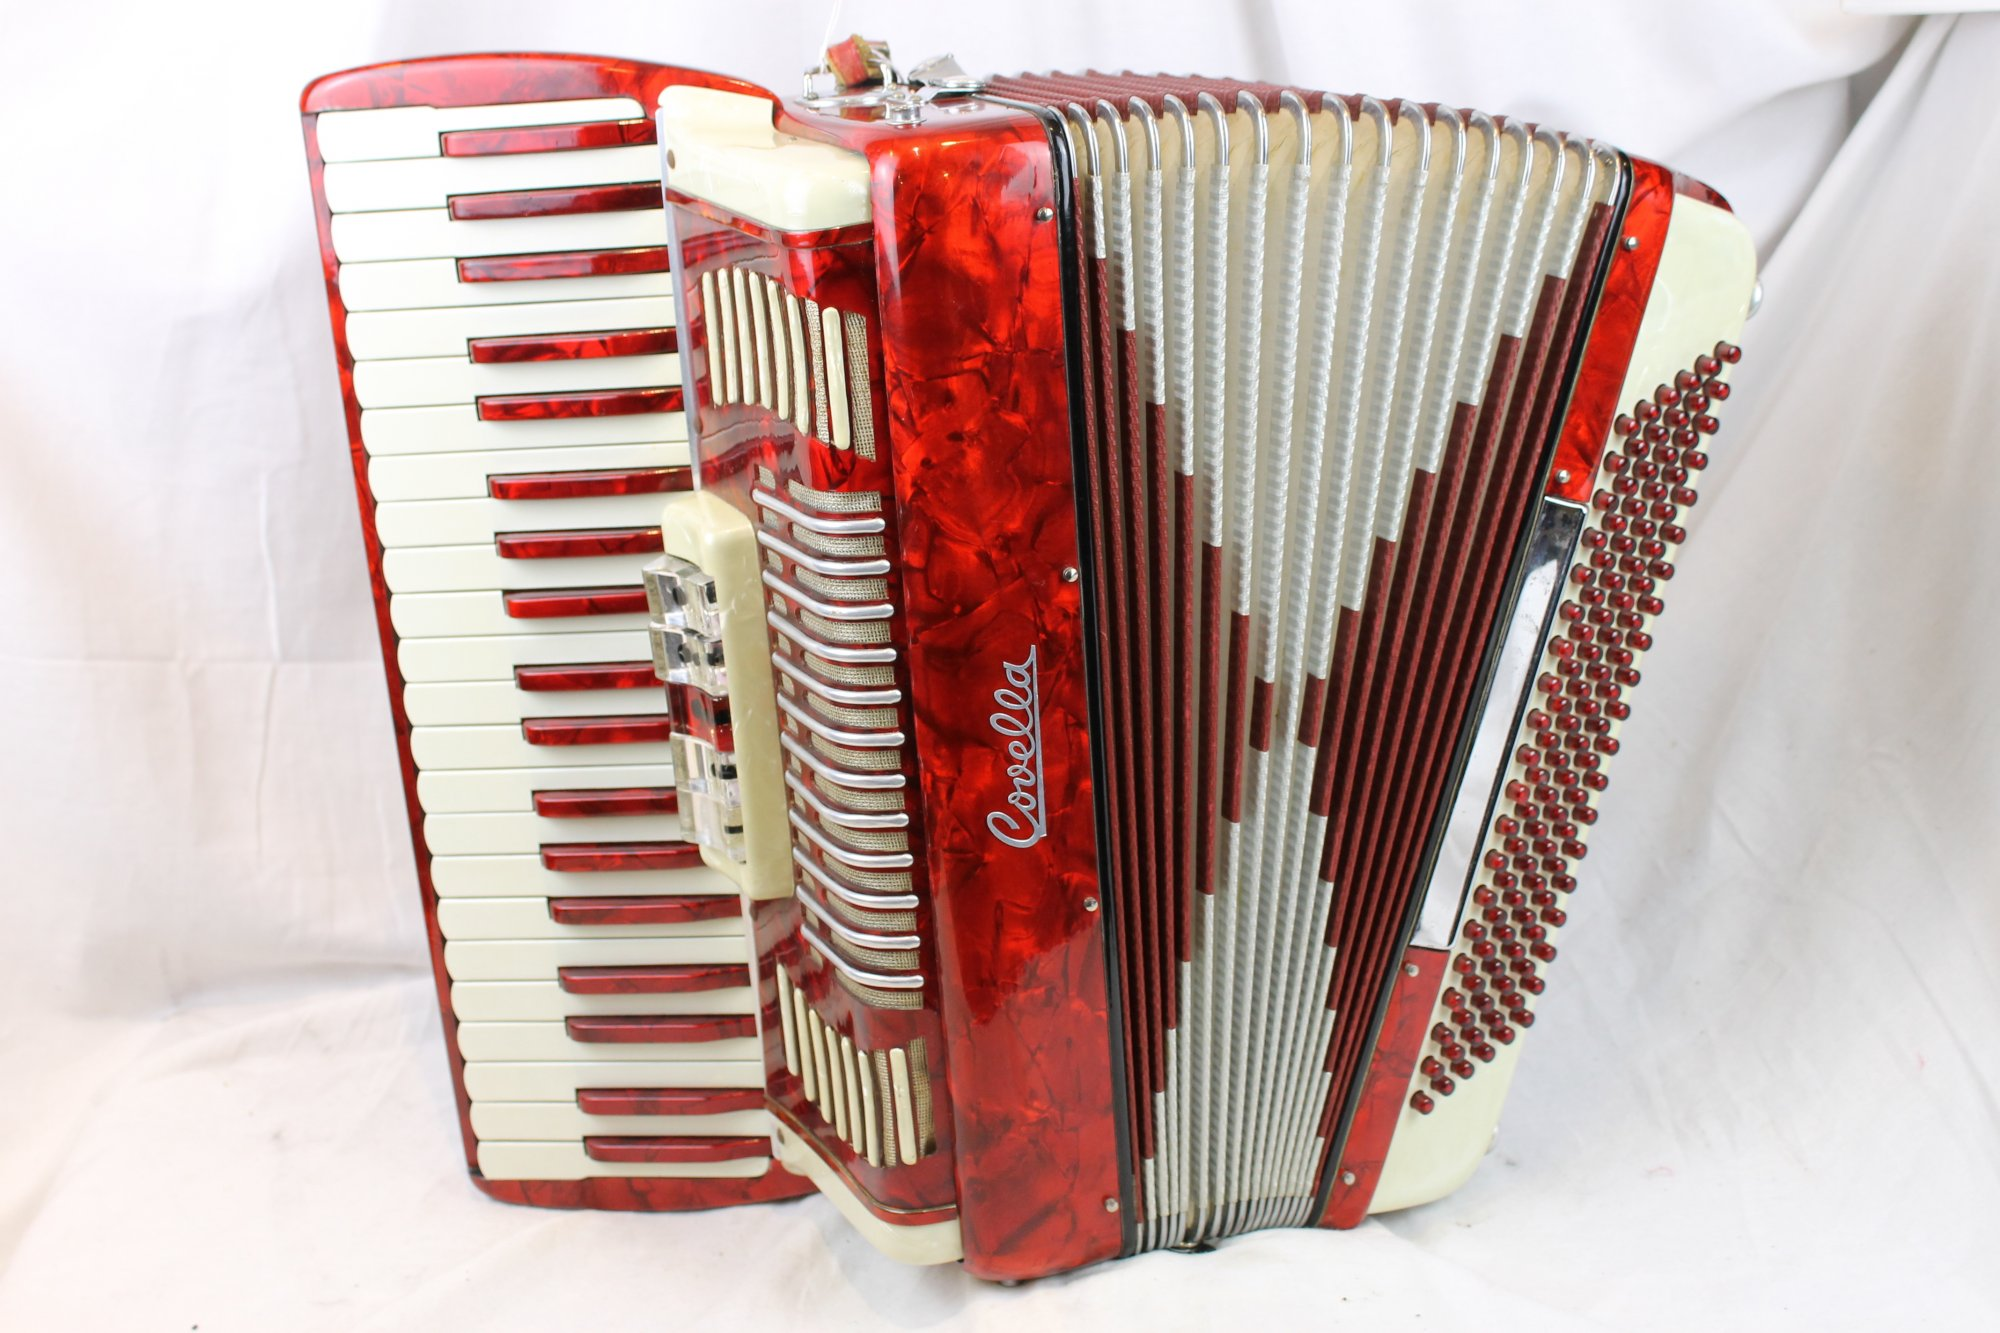 3149 - Red and Cream Covella Piano Accordion LMM 41 120